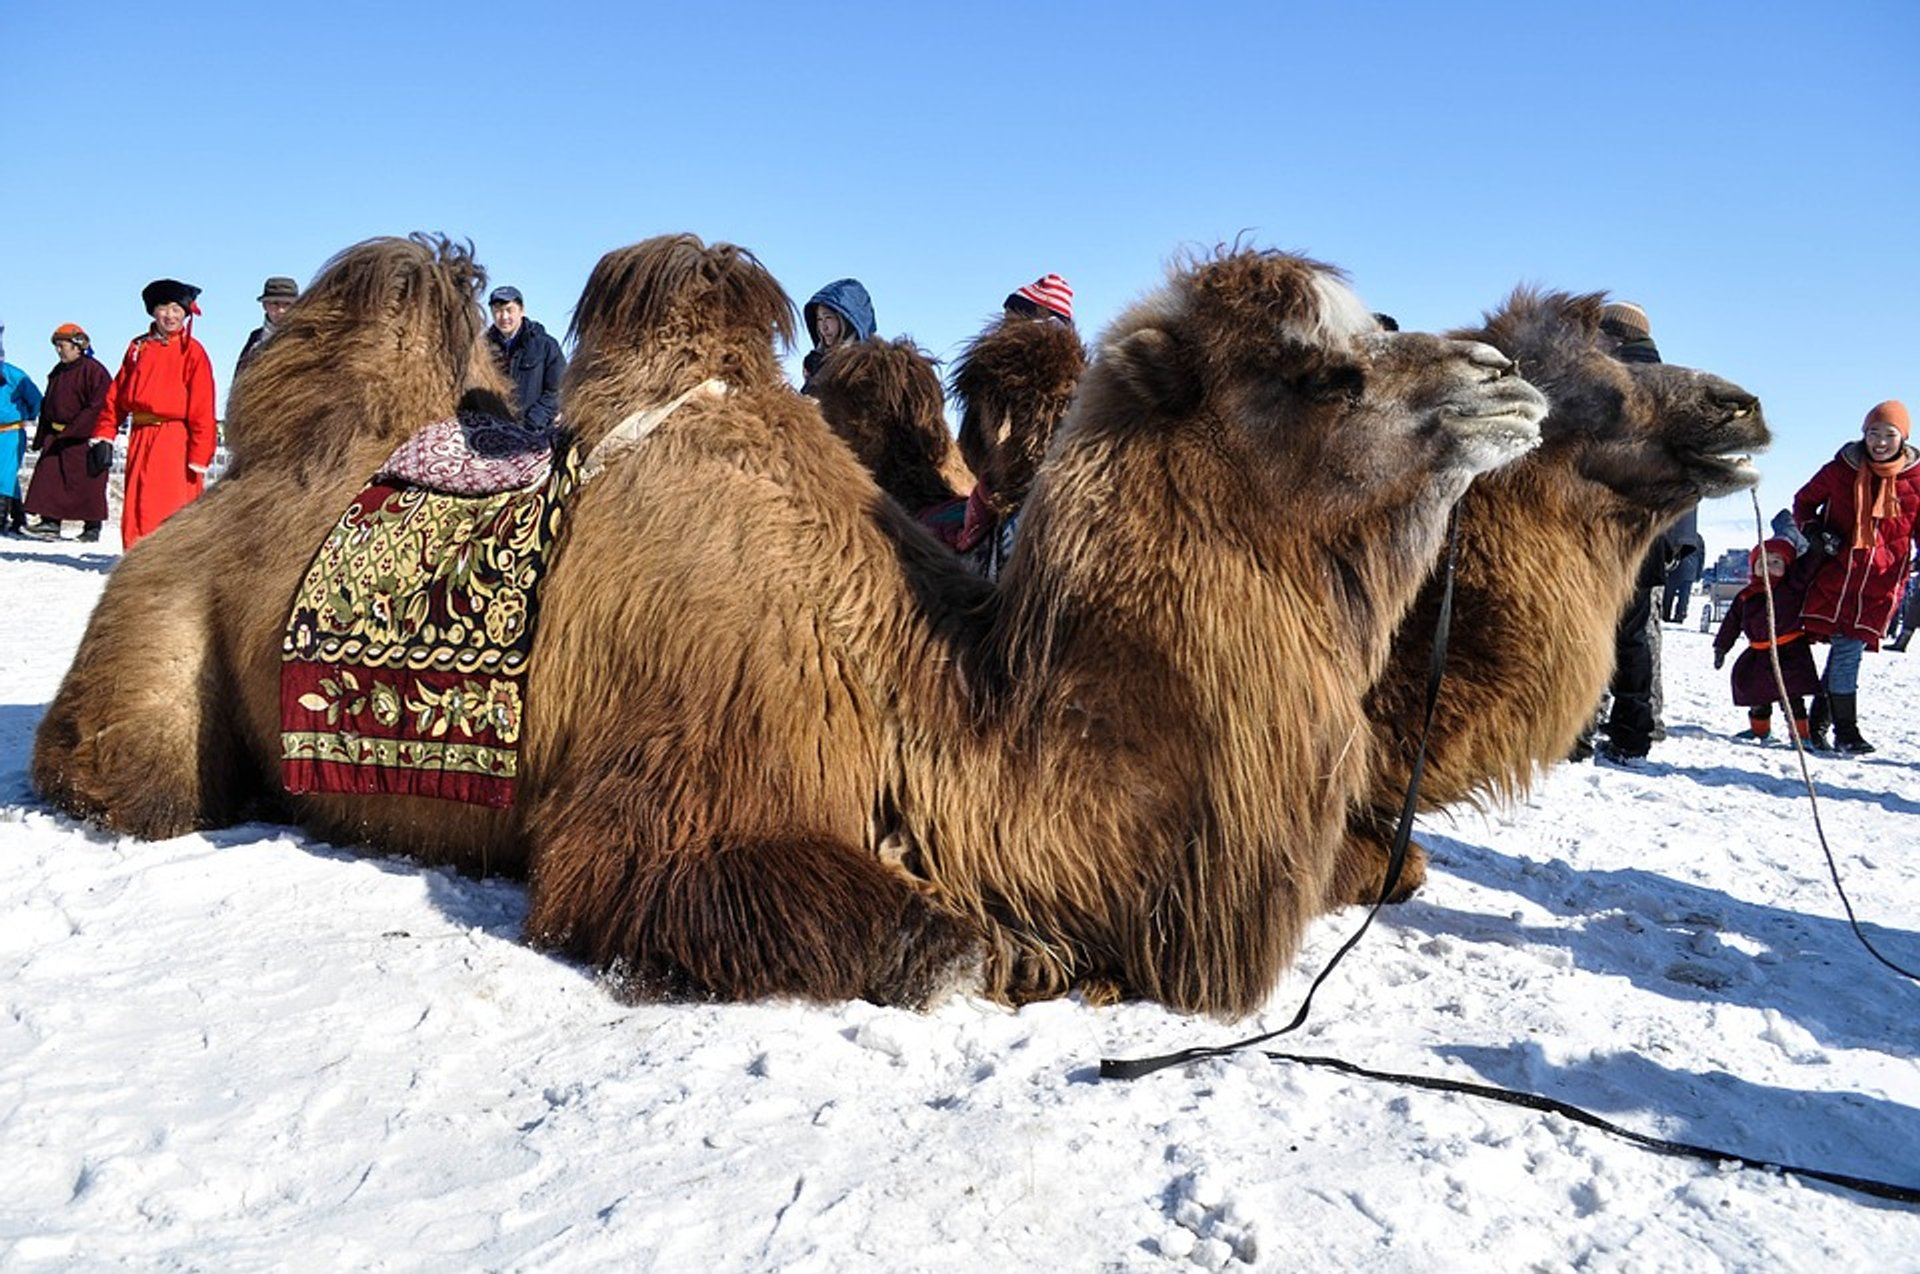 Thousand Camel Festival in Mongolia 2020 - Best Time